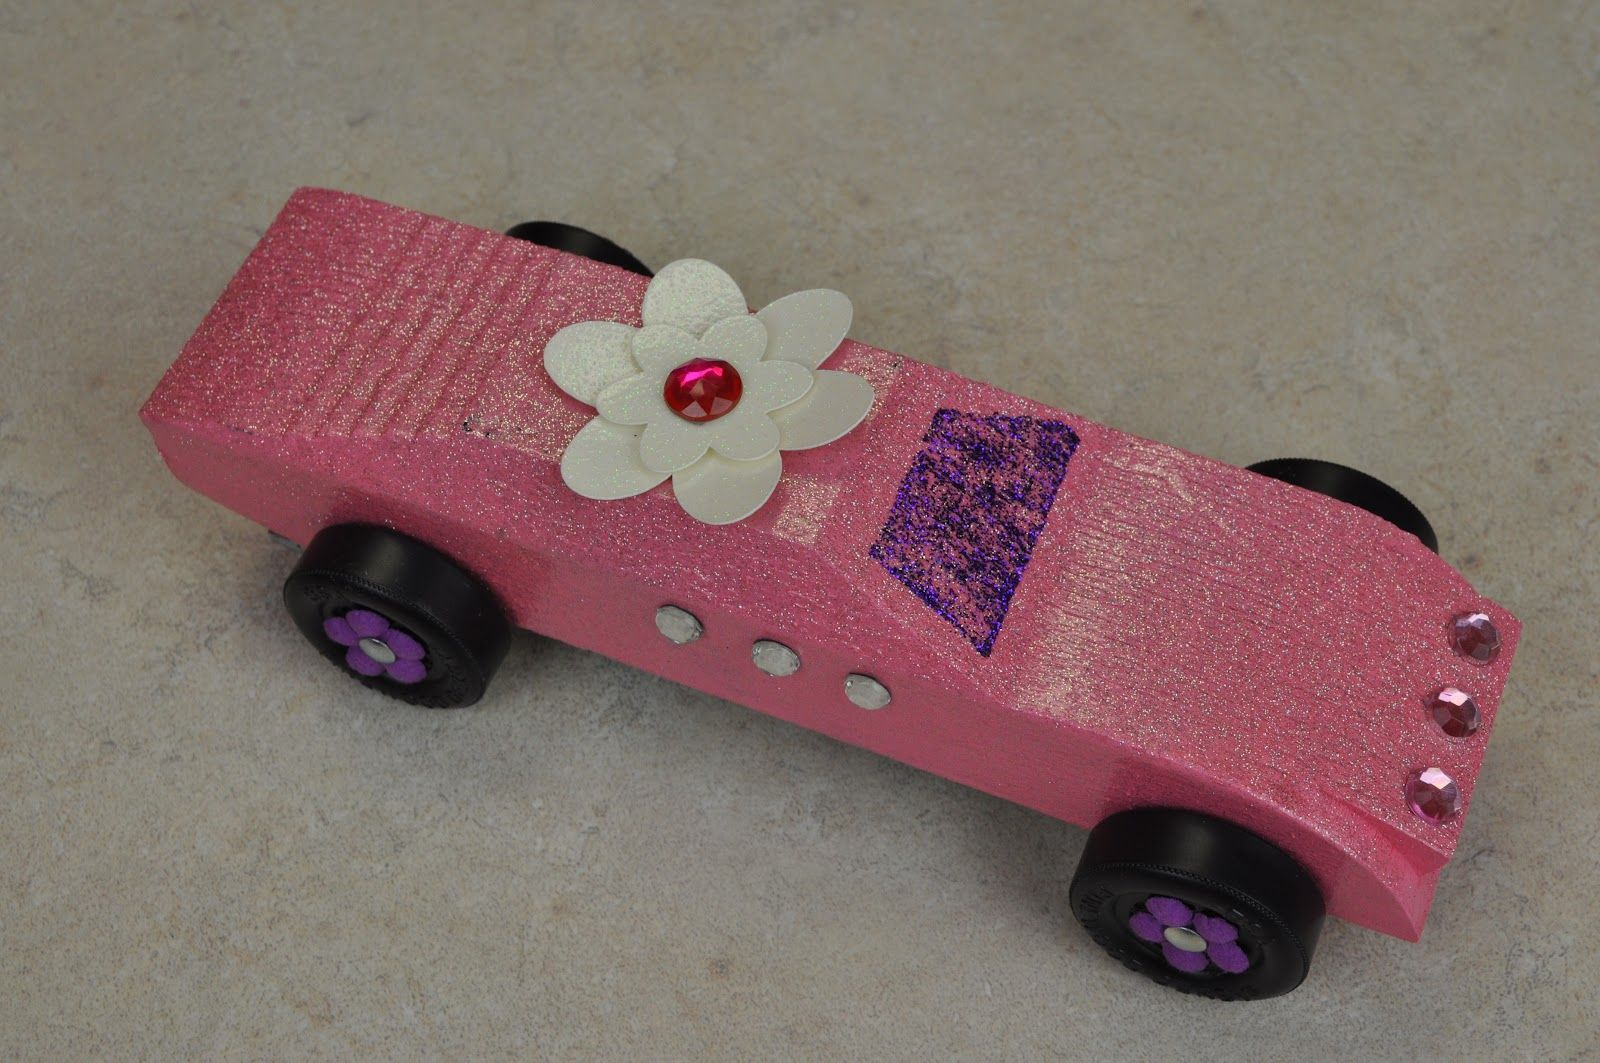 Pinewood derby with my pink stamper